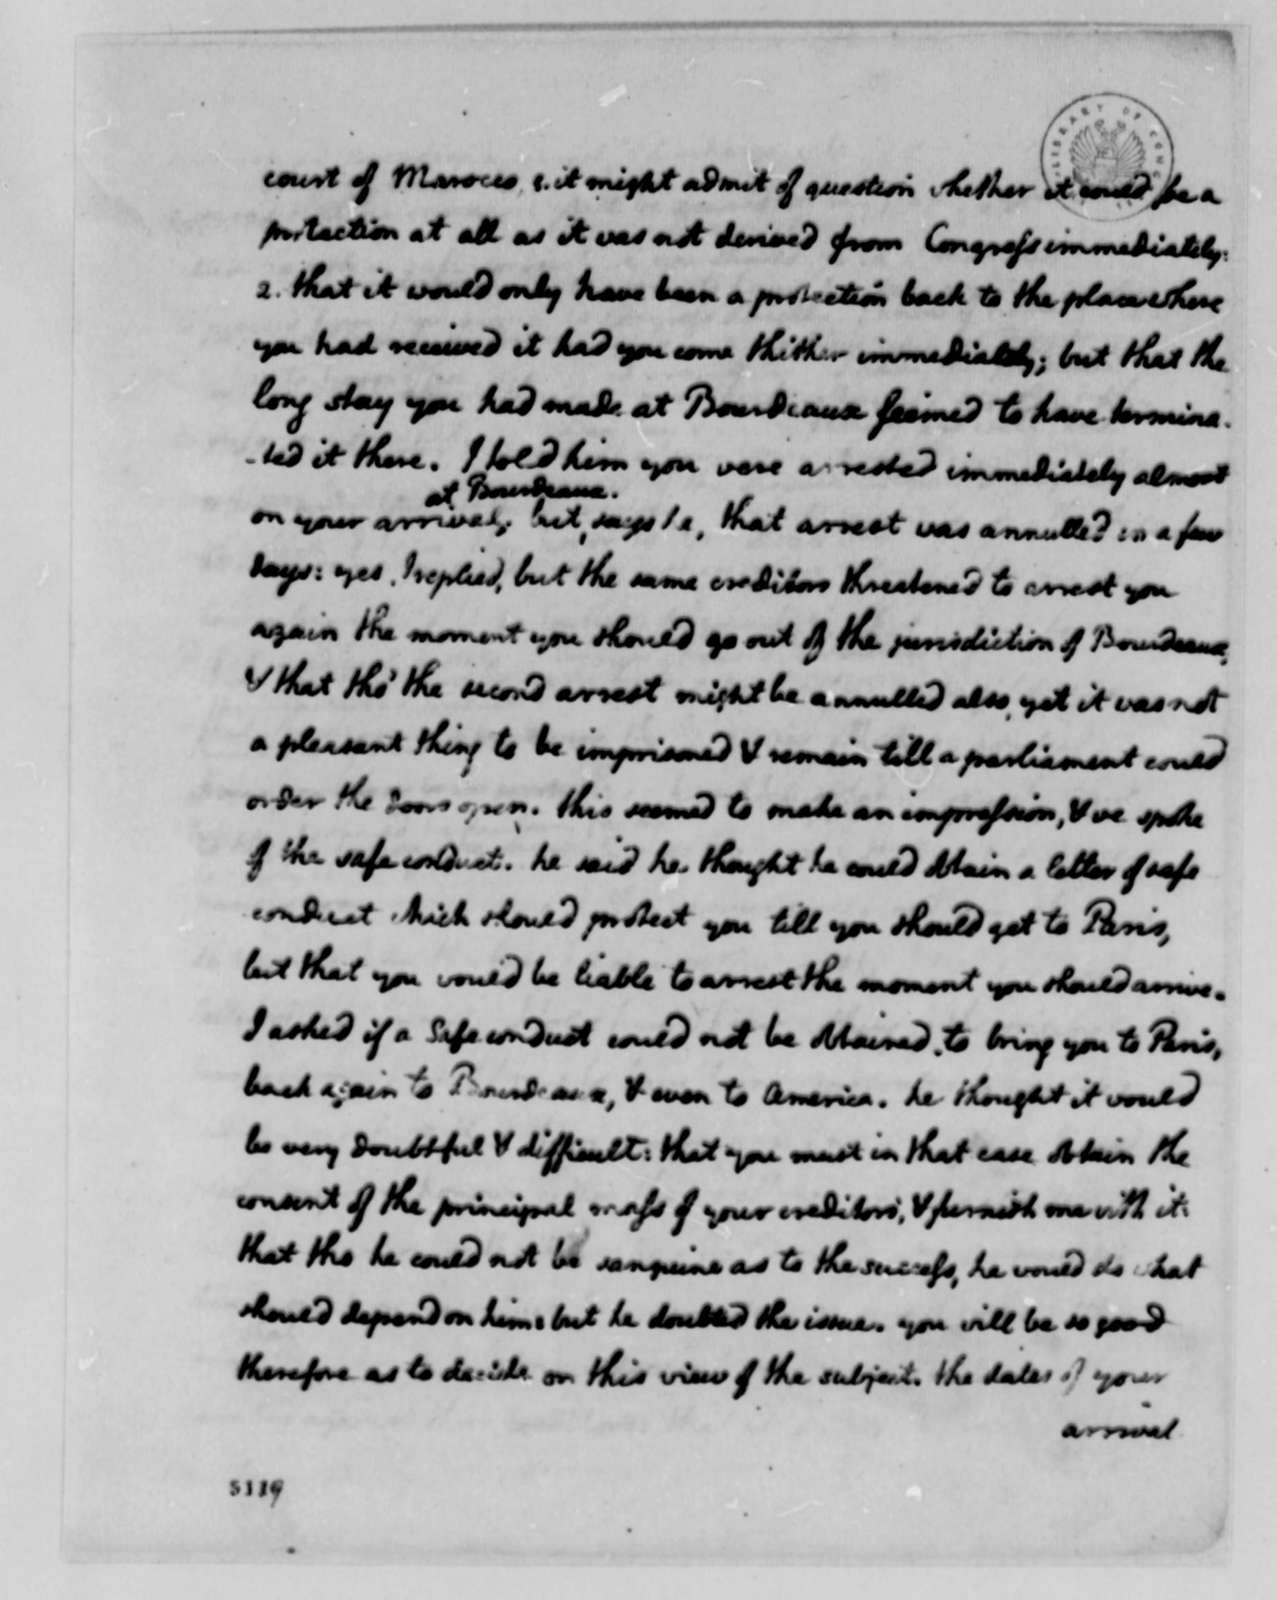 Thomas Jefferson to Thomas Barclay, June 19, 1787